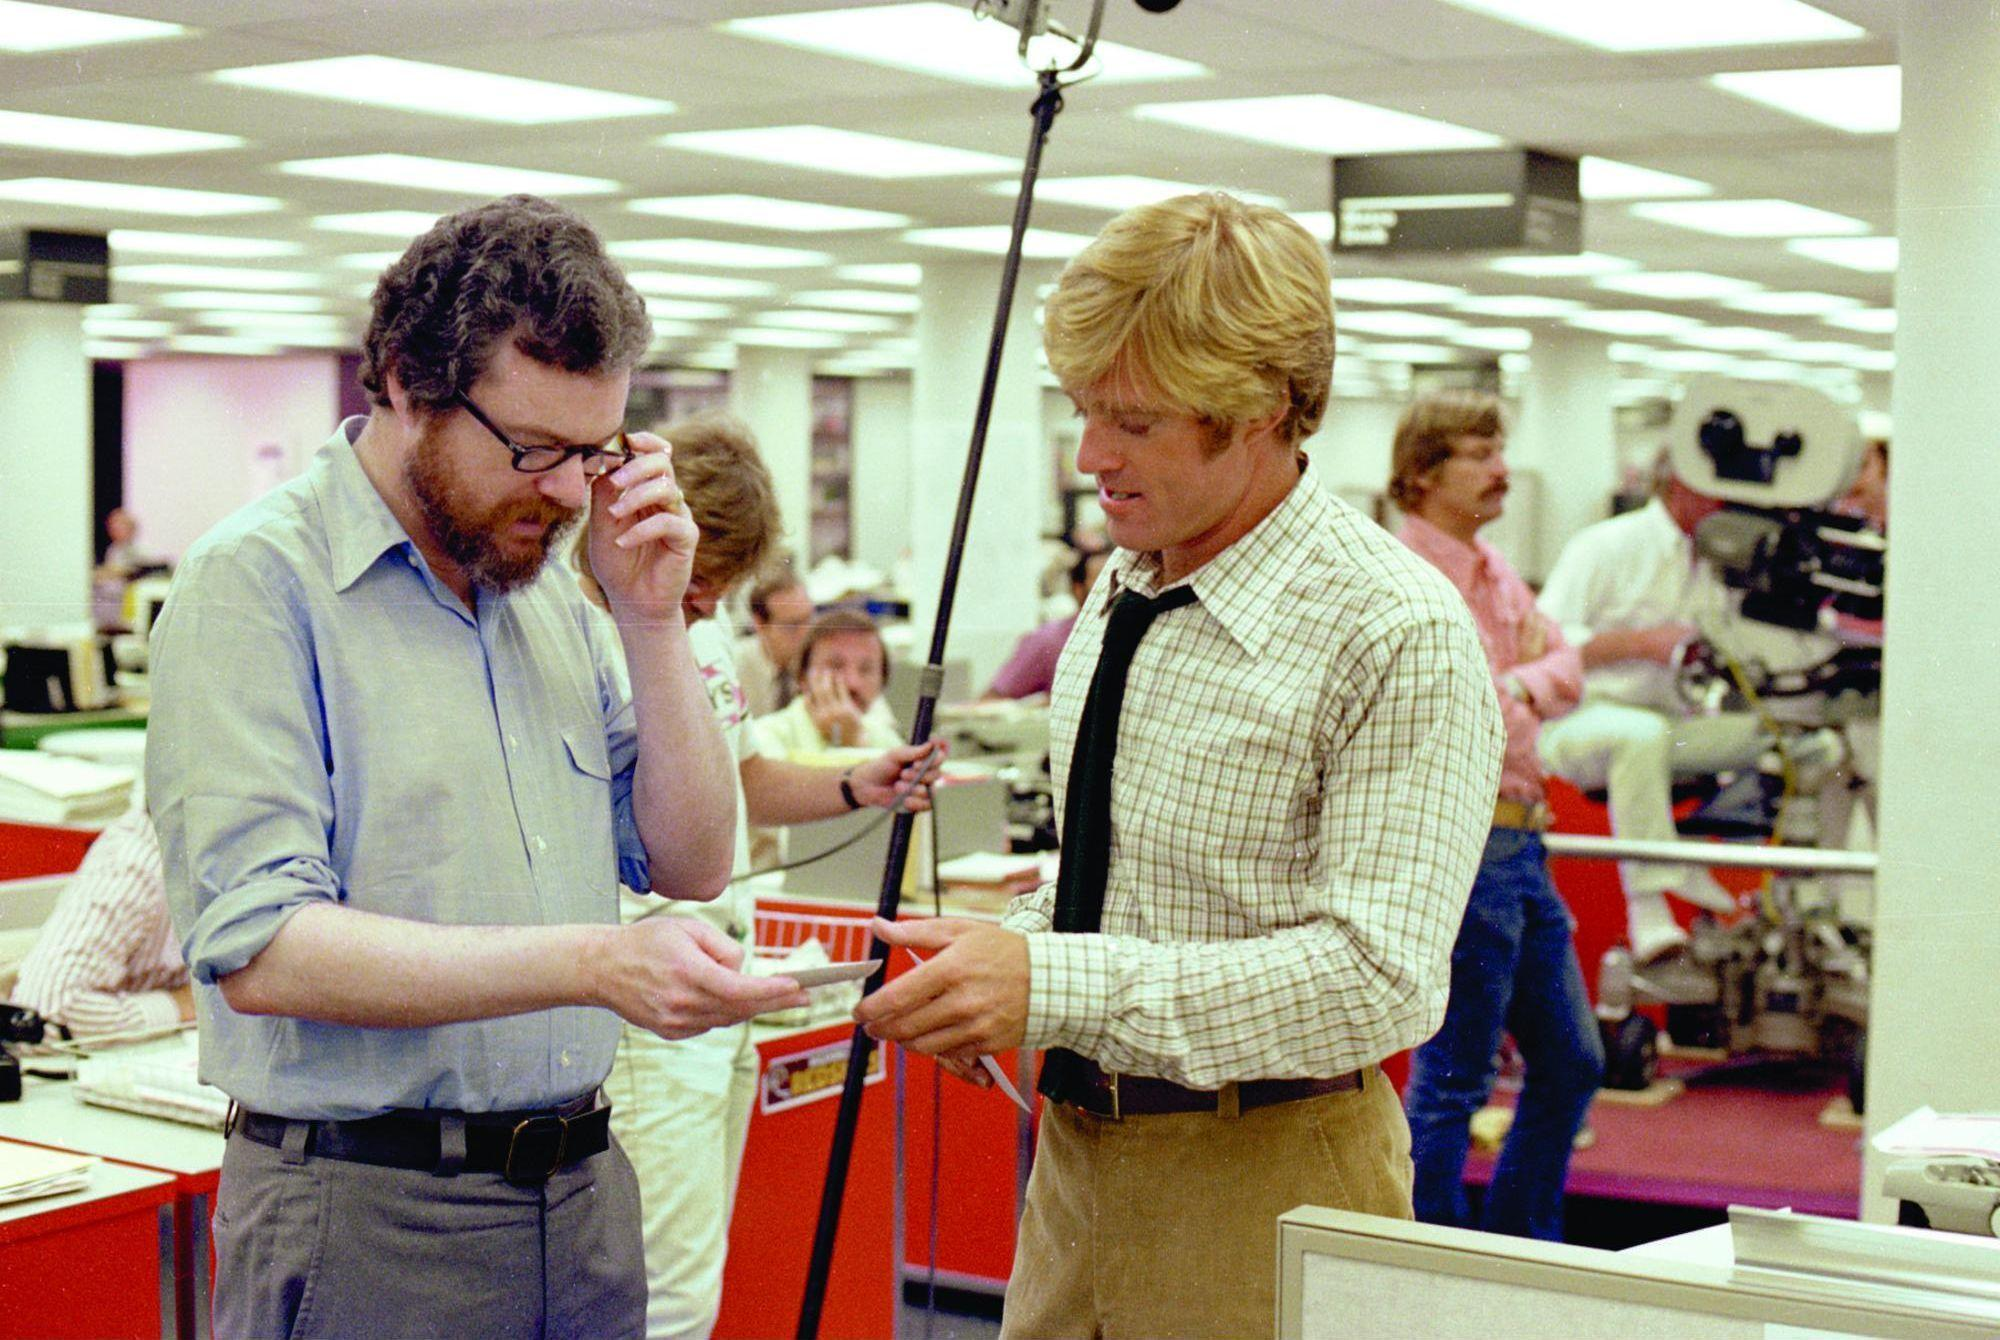 Pakula and Redford discuss a scene on the Washington Post newsroom set.